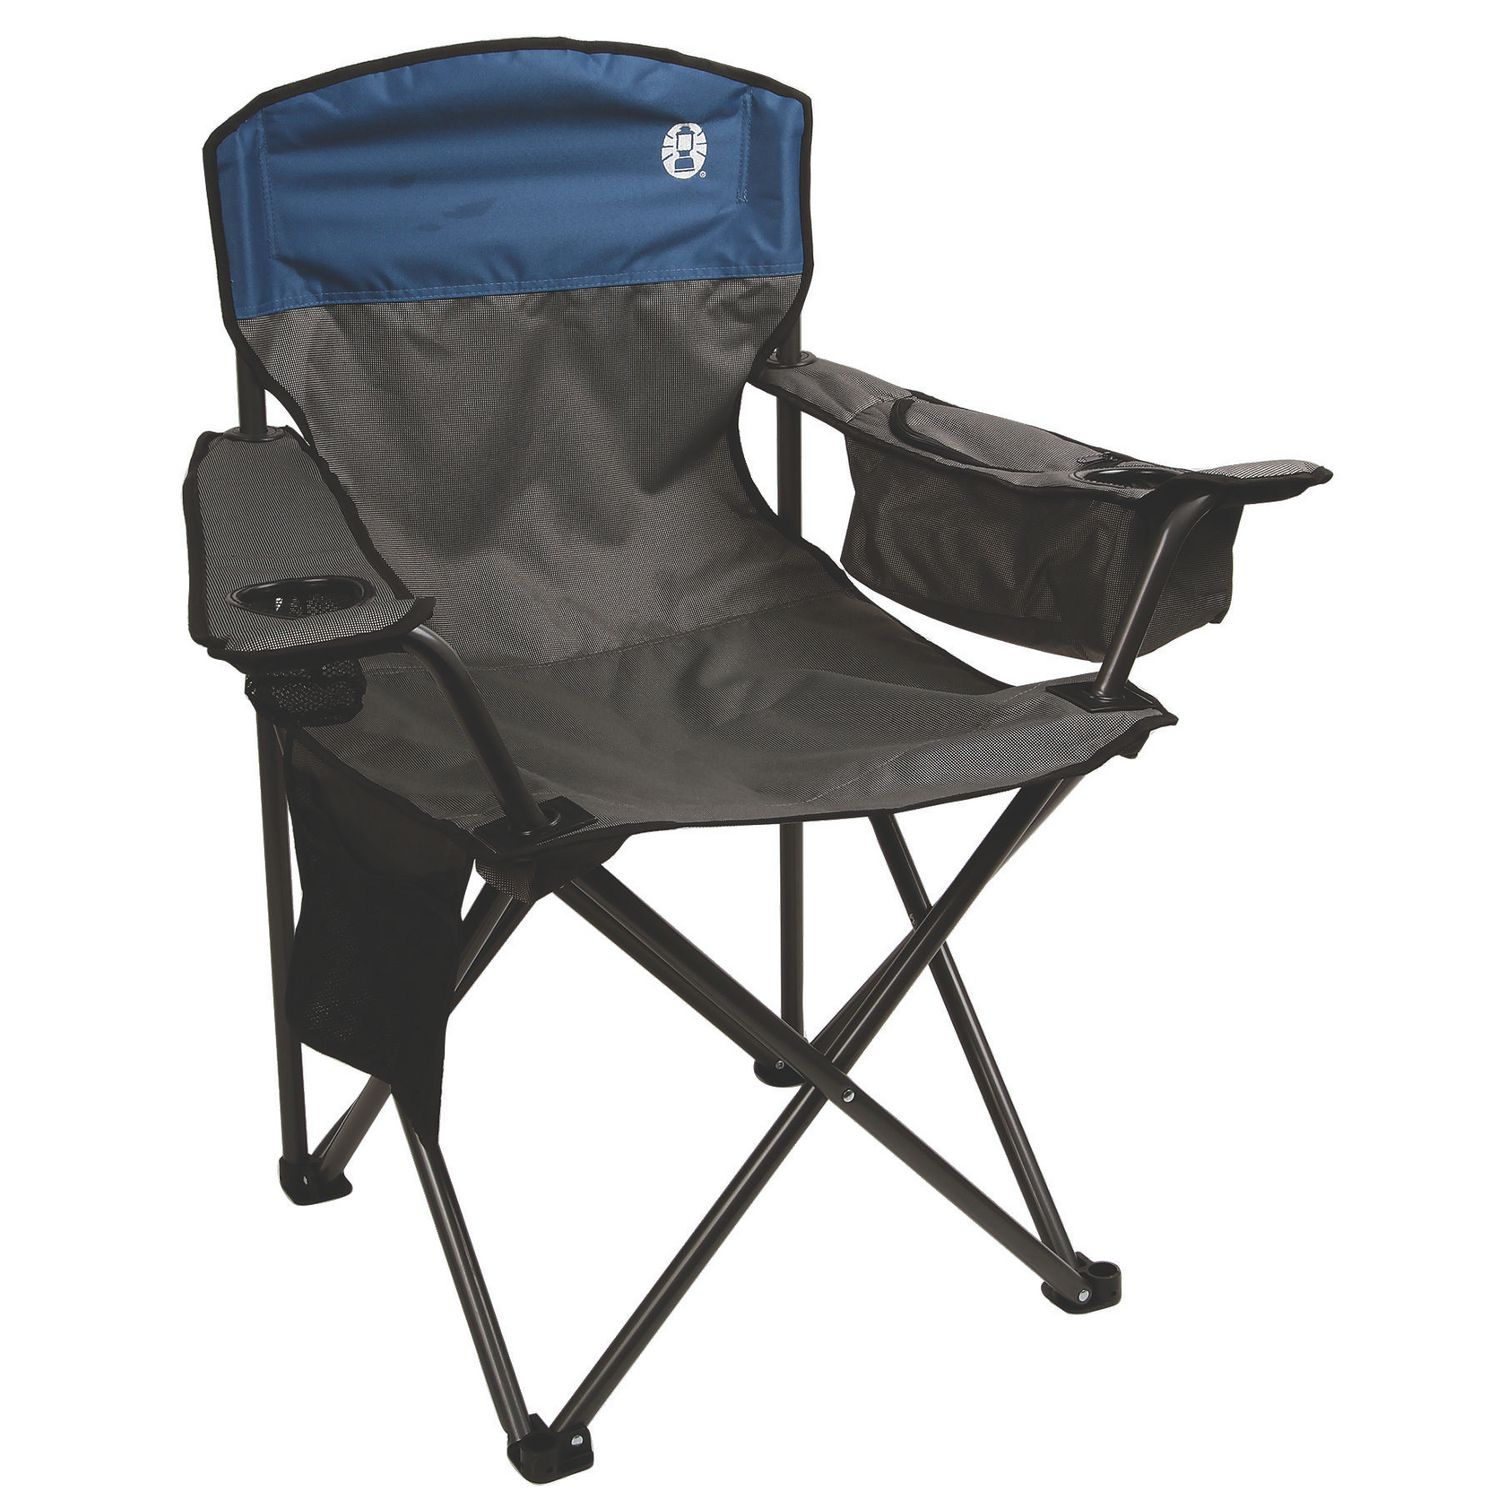 Coleman Oversized Cooler Quad Chair Walmart Canada